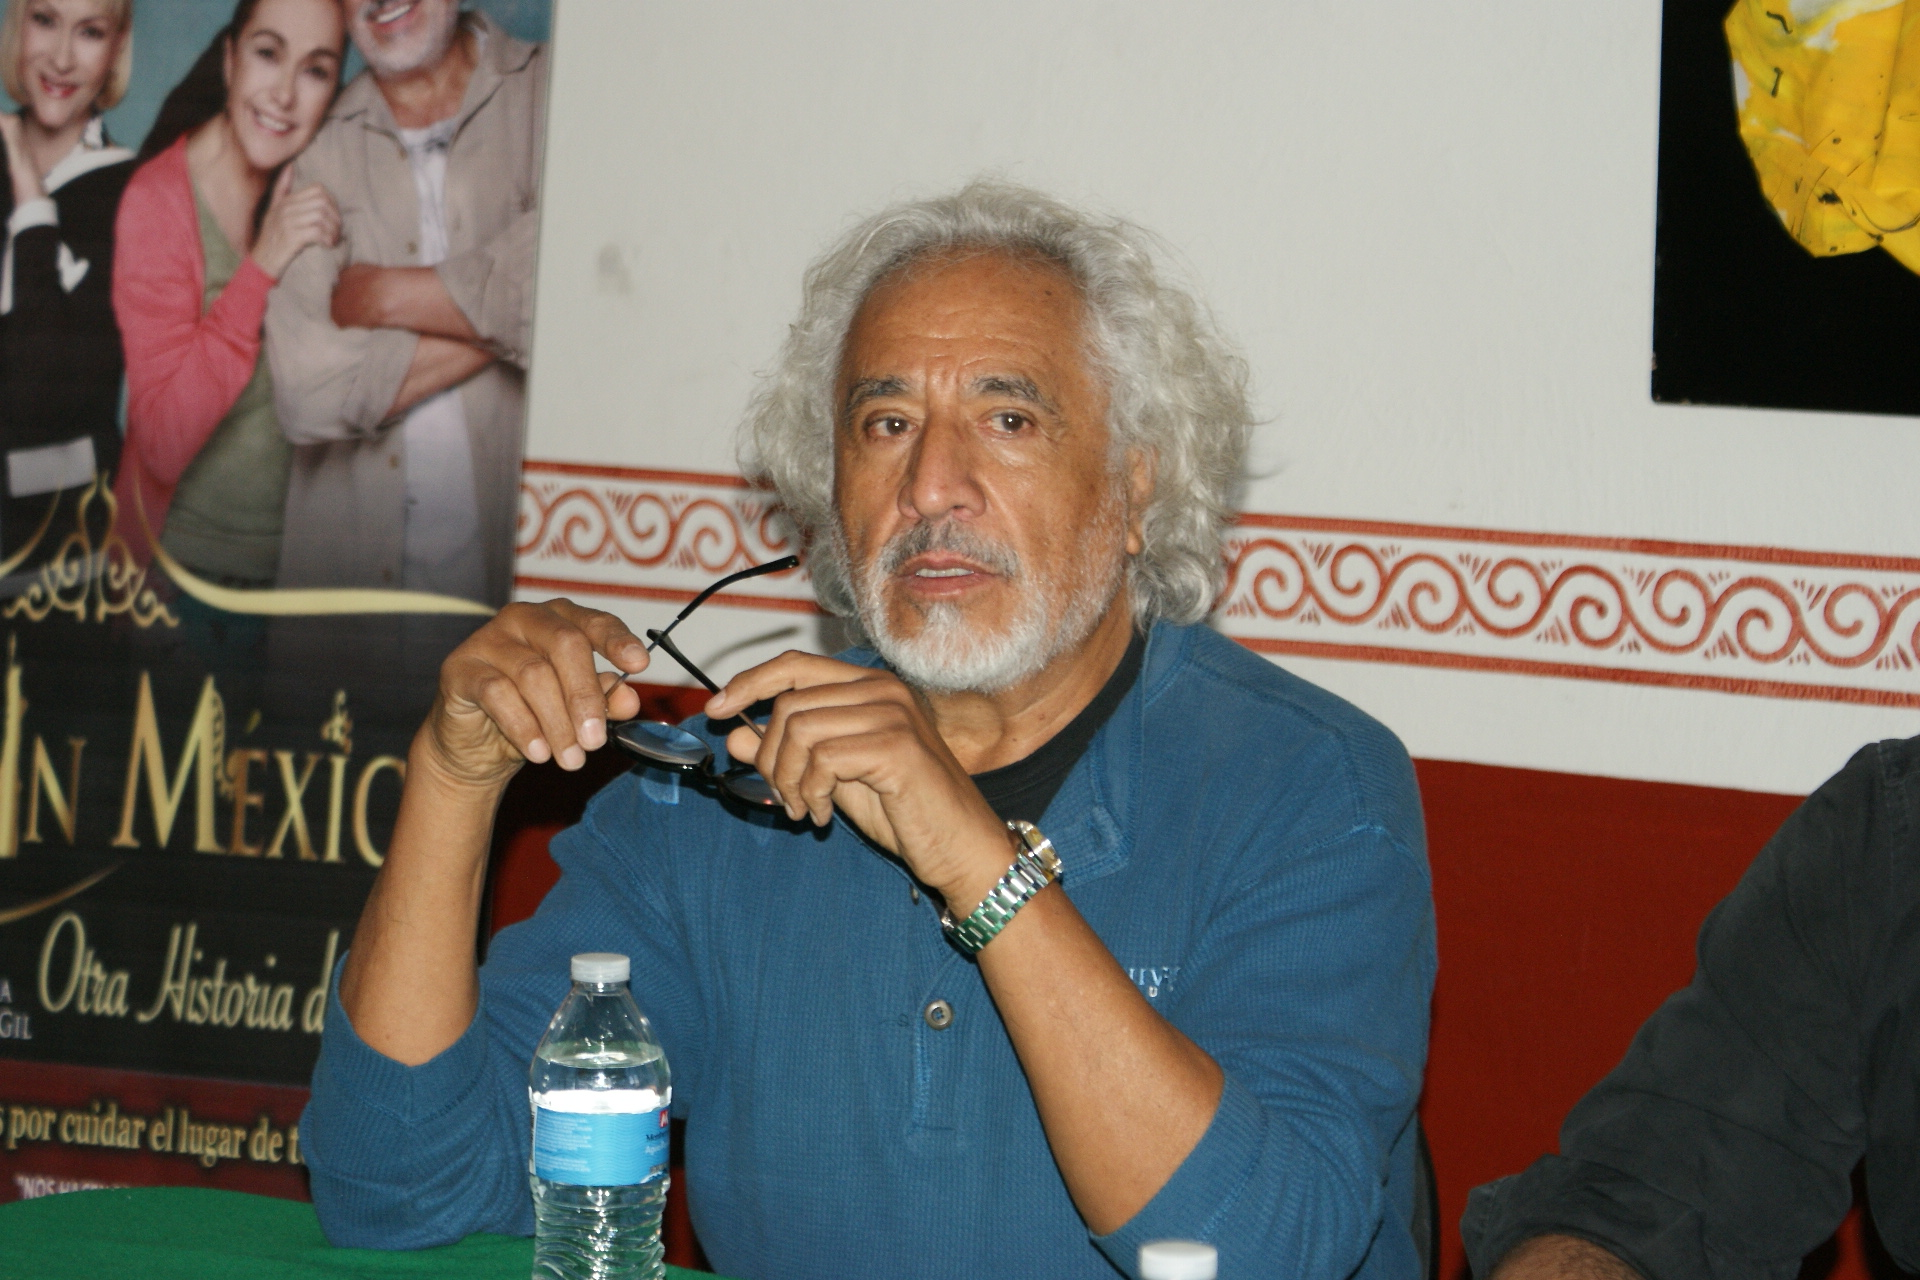 EL ACTOR RAFAEL INCLAN